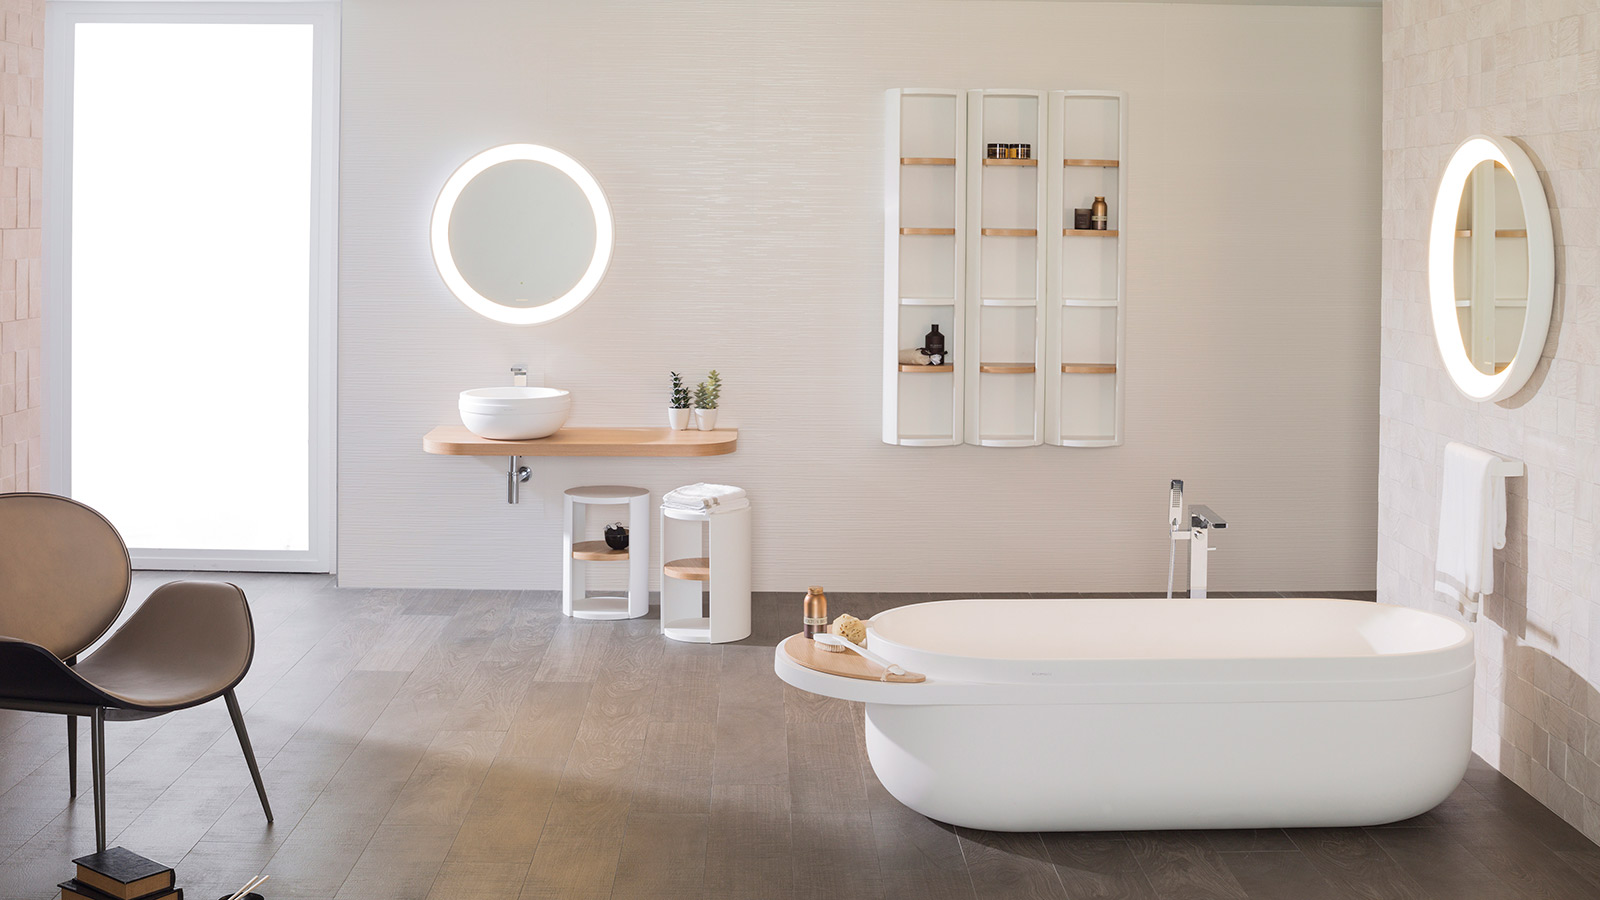 The round mirror, a timeless classic fitting for bathrooms